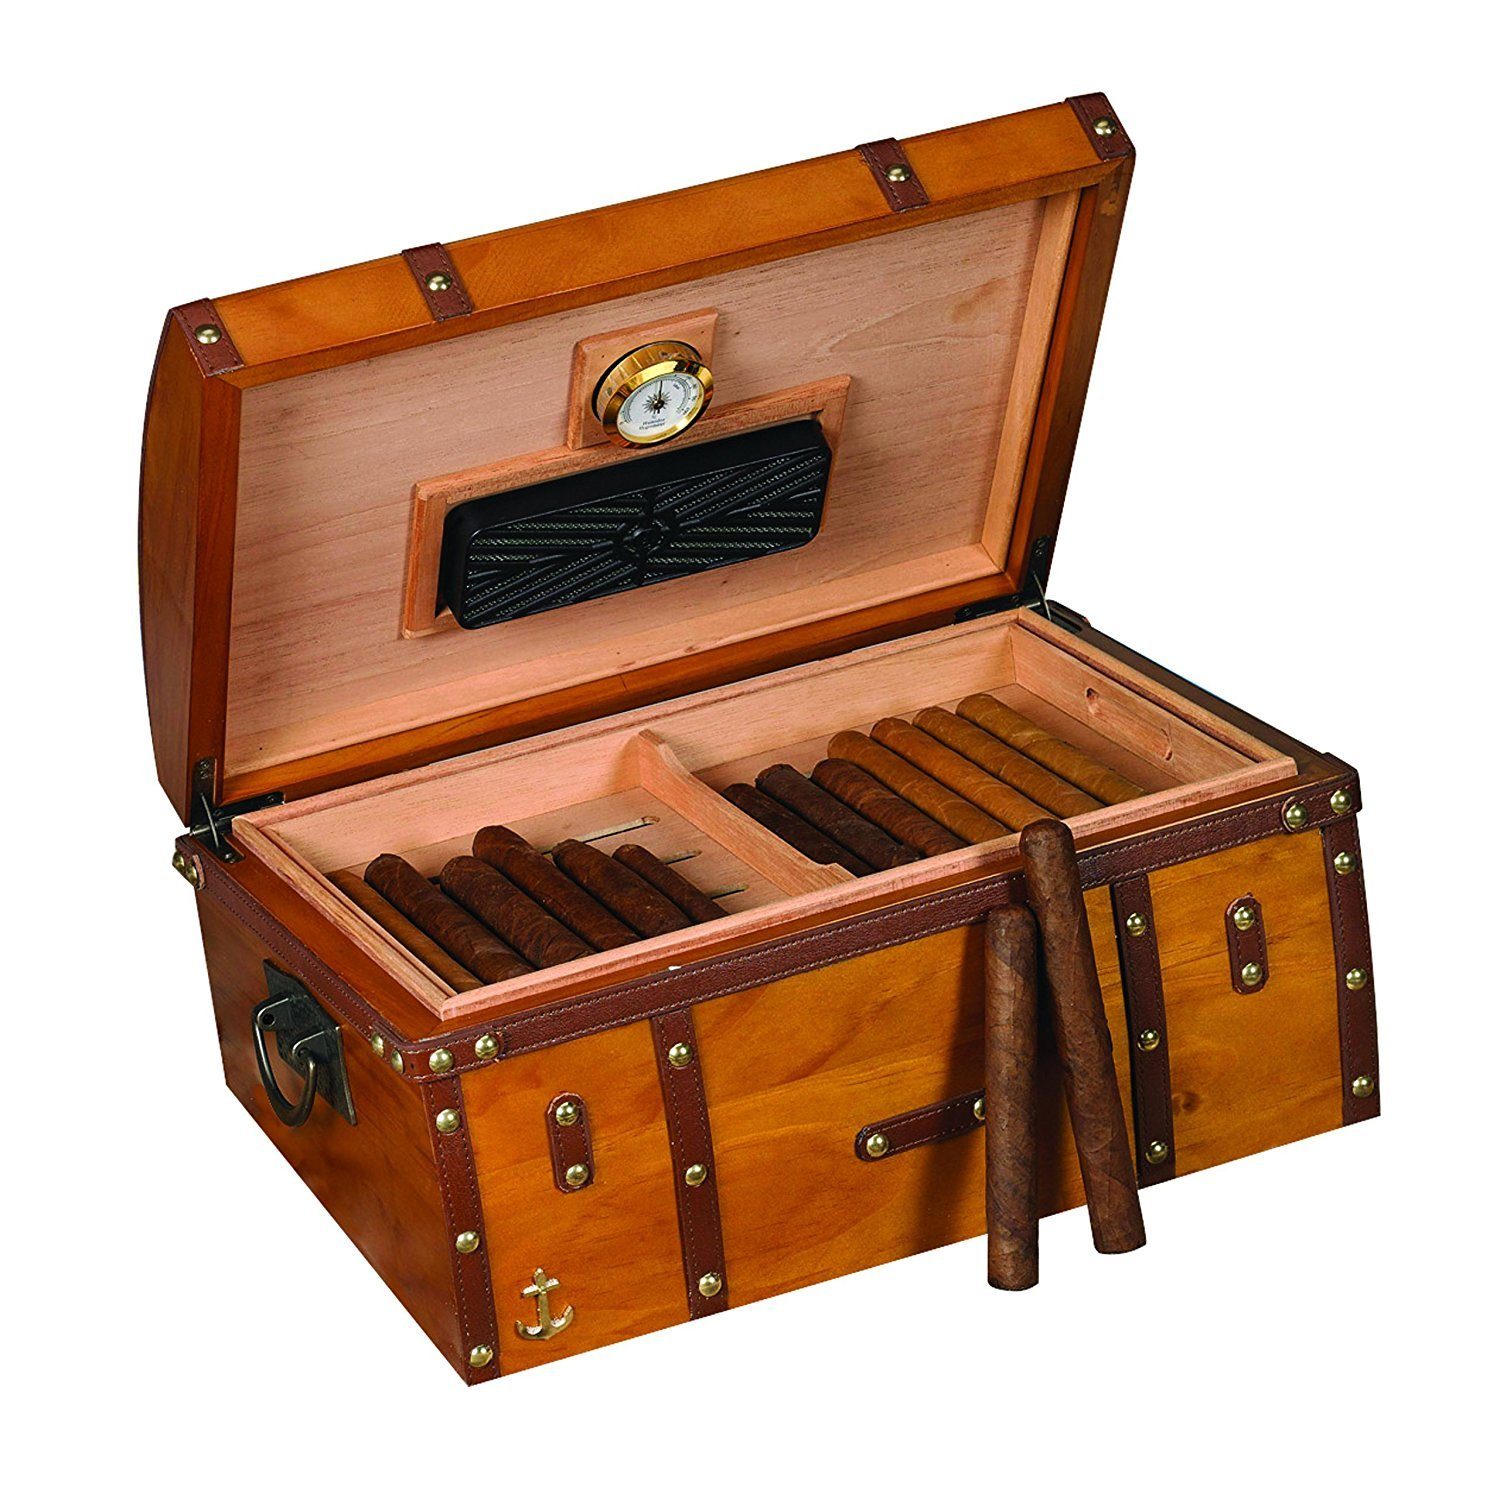 Humidor Supreme Gold Rush Cigar Humidor, Spanish Cedar Tray and Dividers, Glass Hygrometer with Brass Frame, Holds up to 200 Cigars, Exterior 16''x11'' x8'' by Humidor Supreme (Image #2)